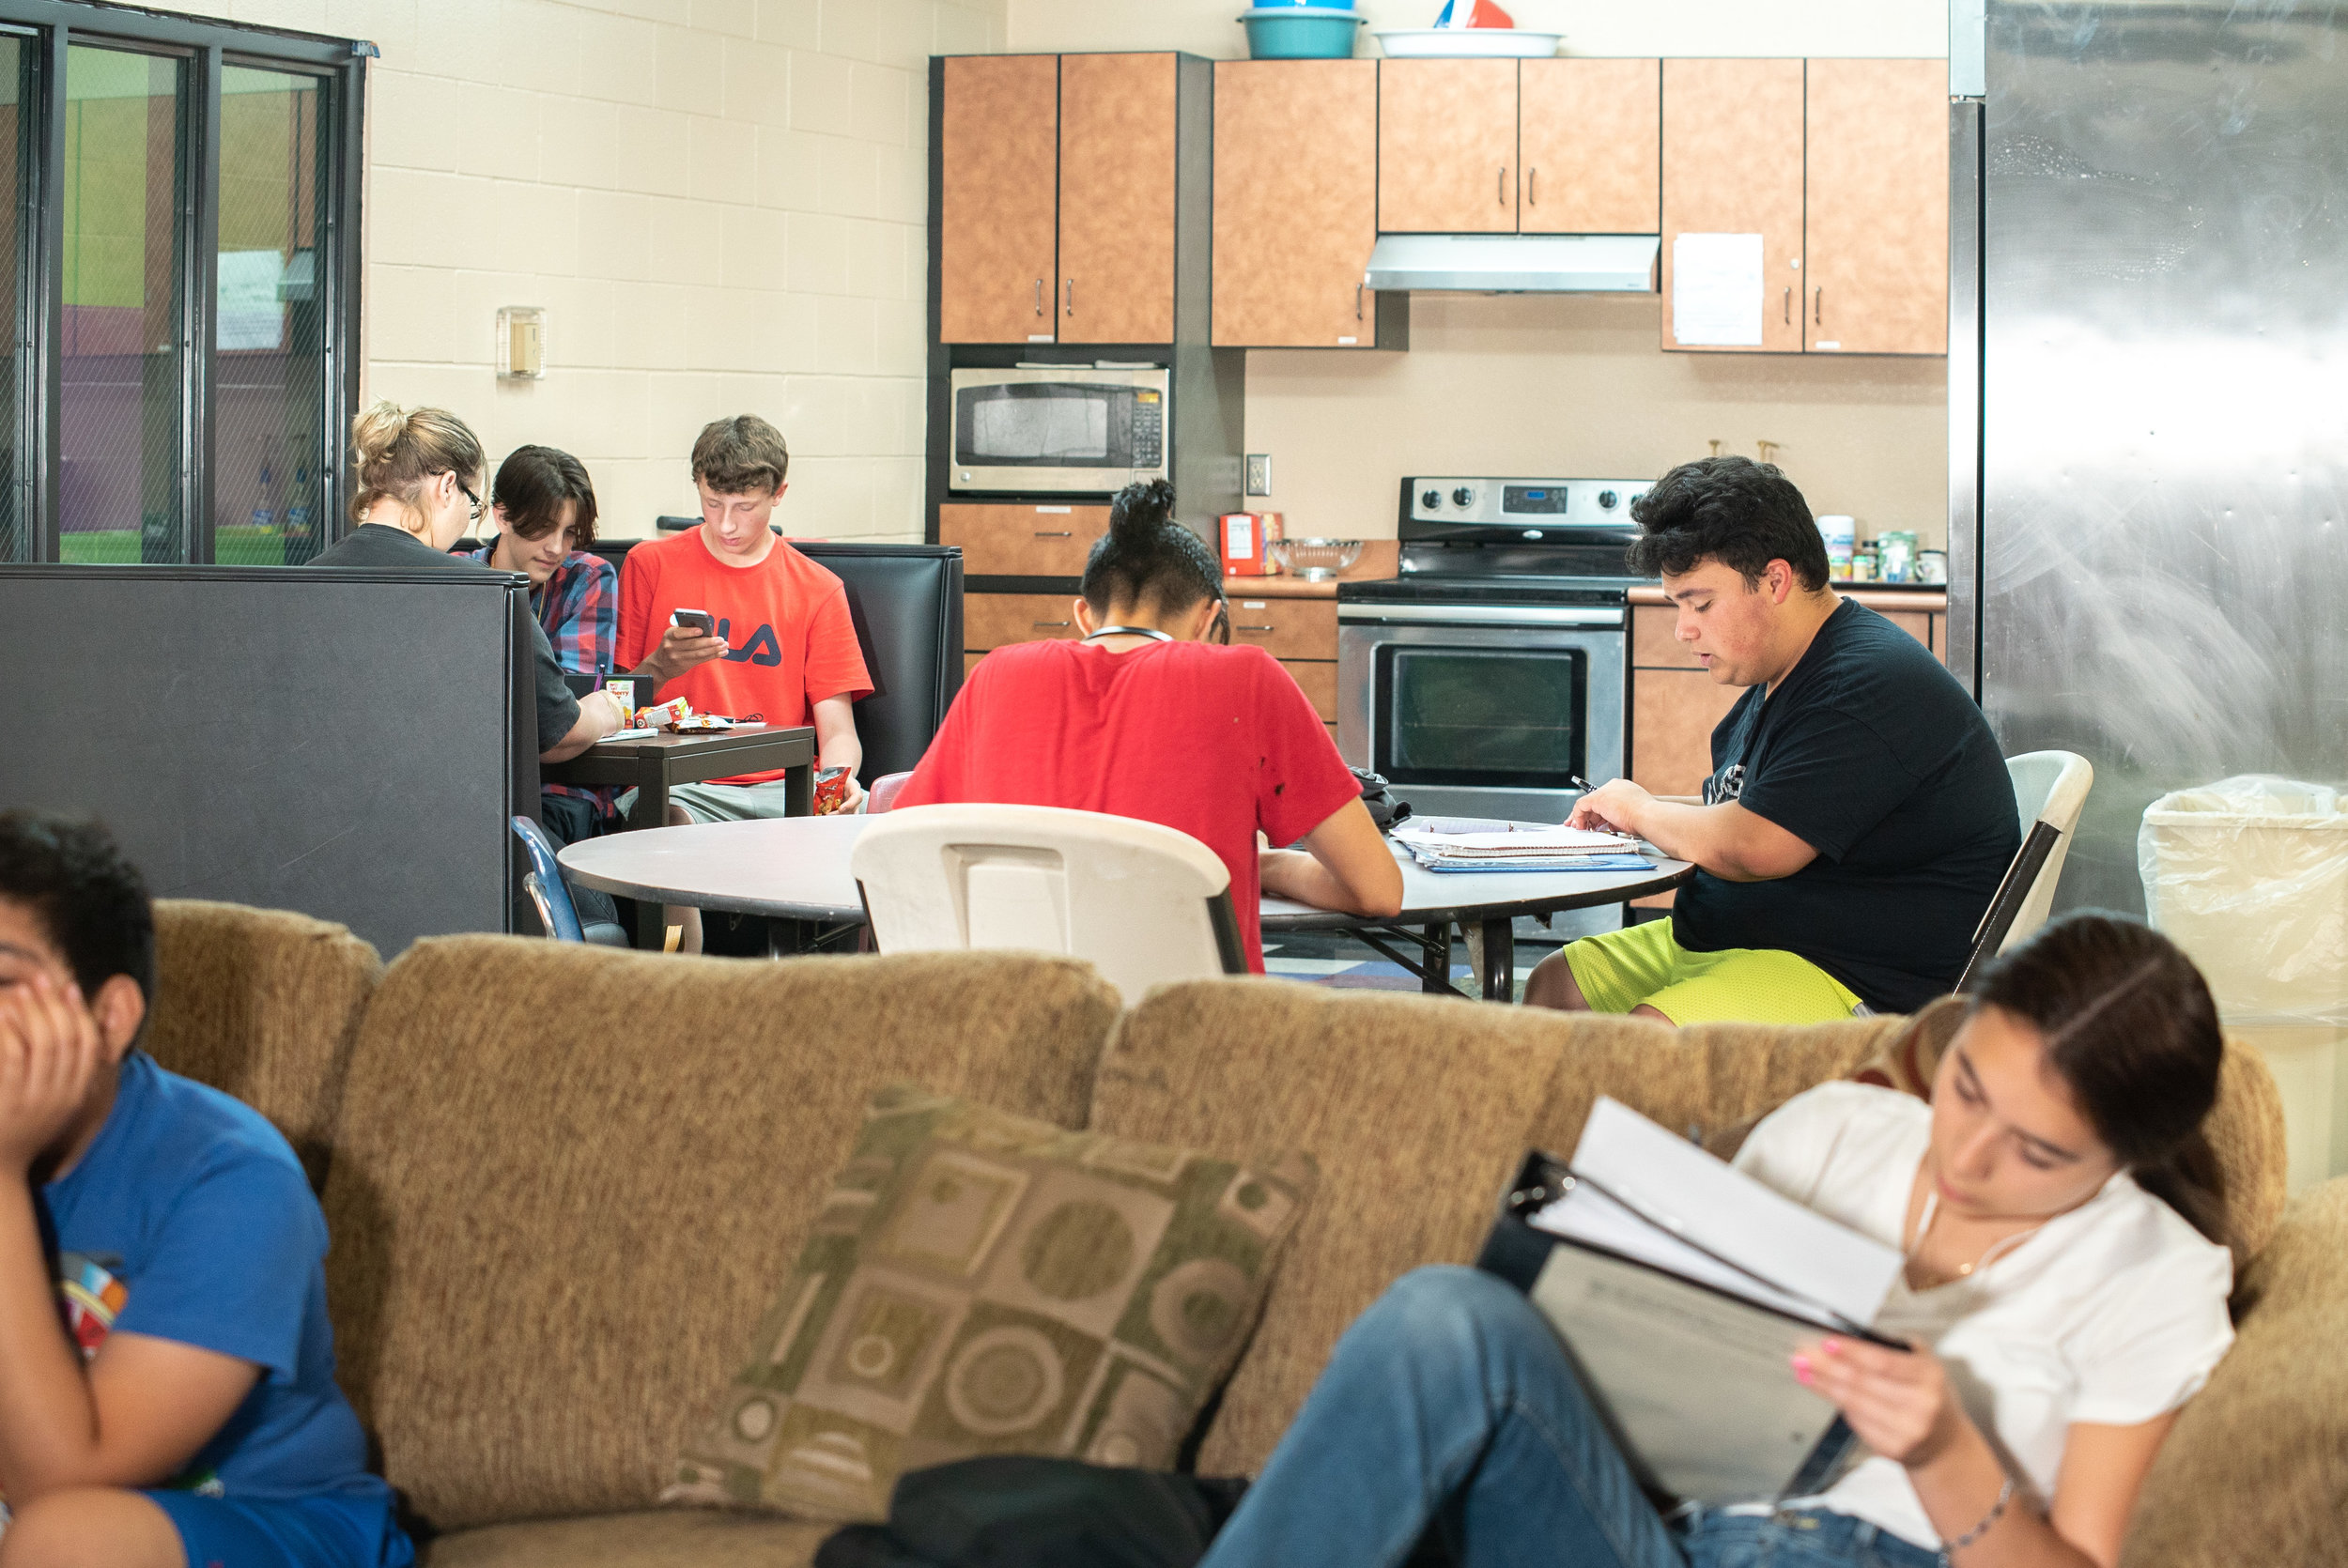 Teens enjoy a snack with friends while finishing homework in the kitchen area.